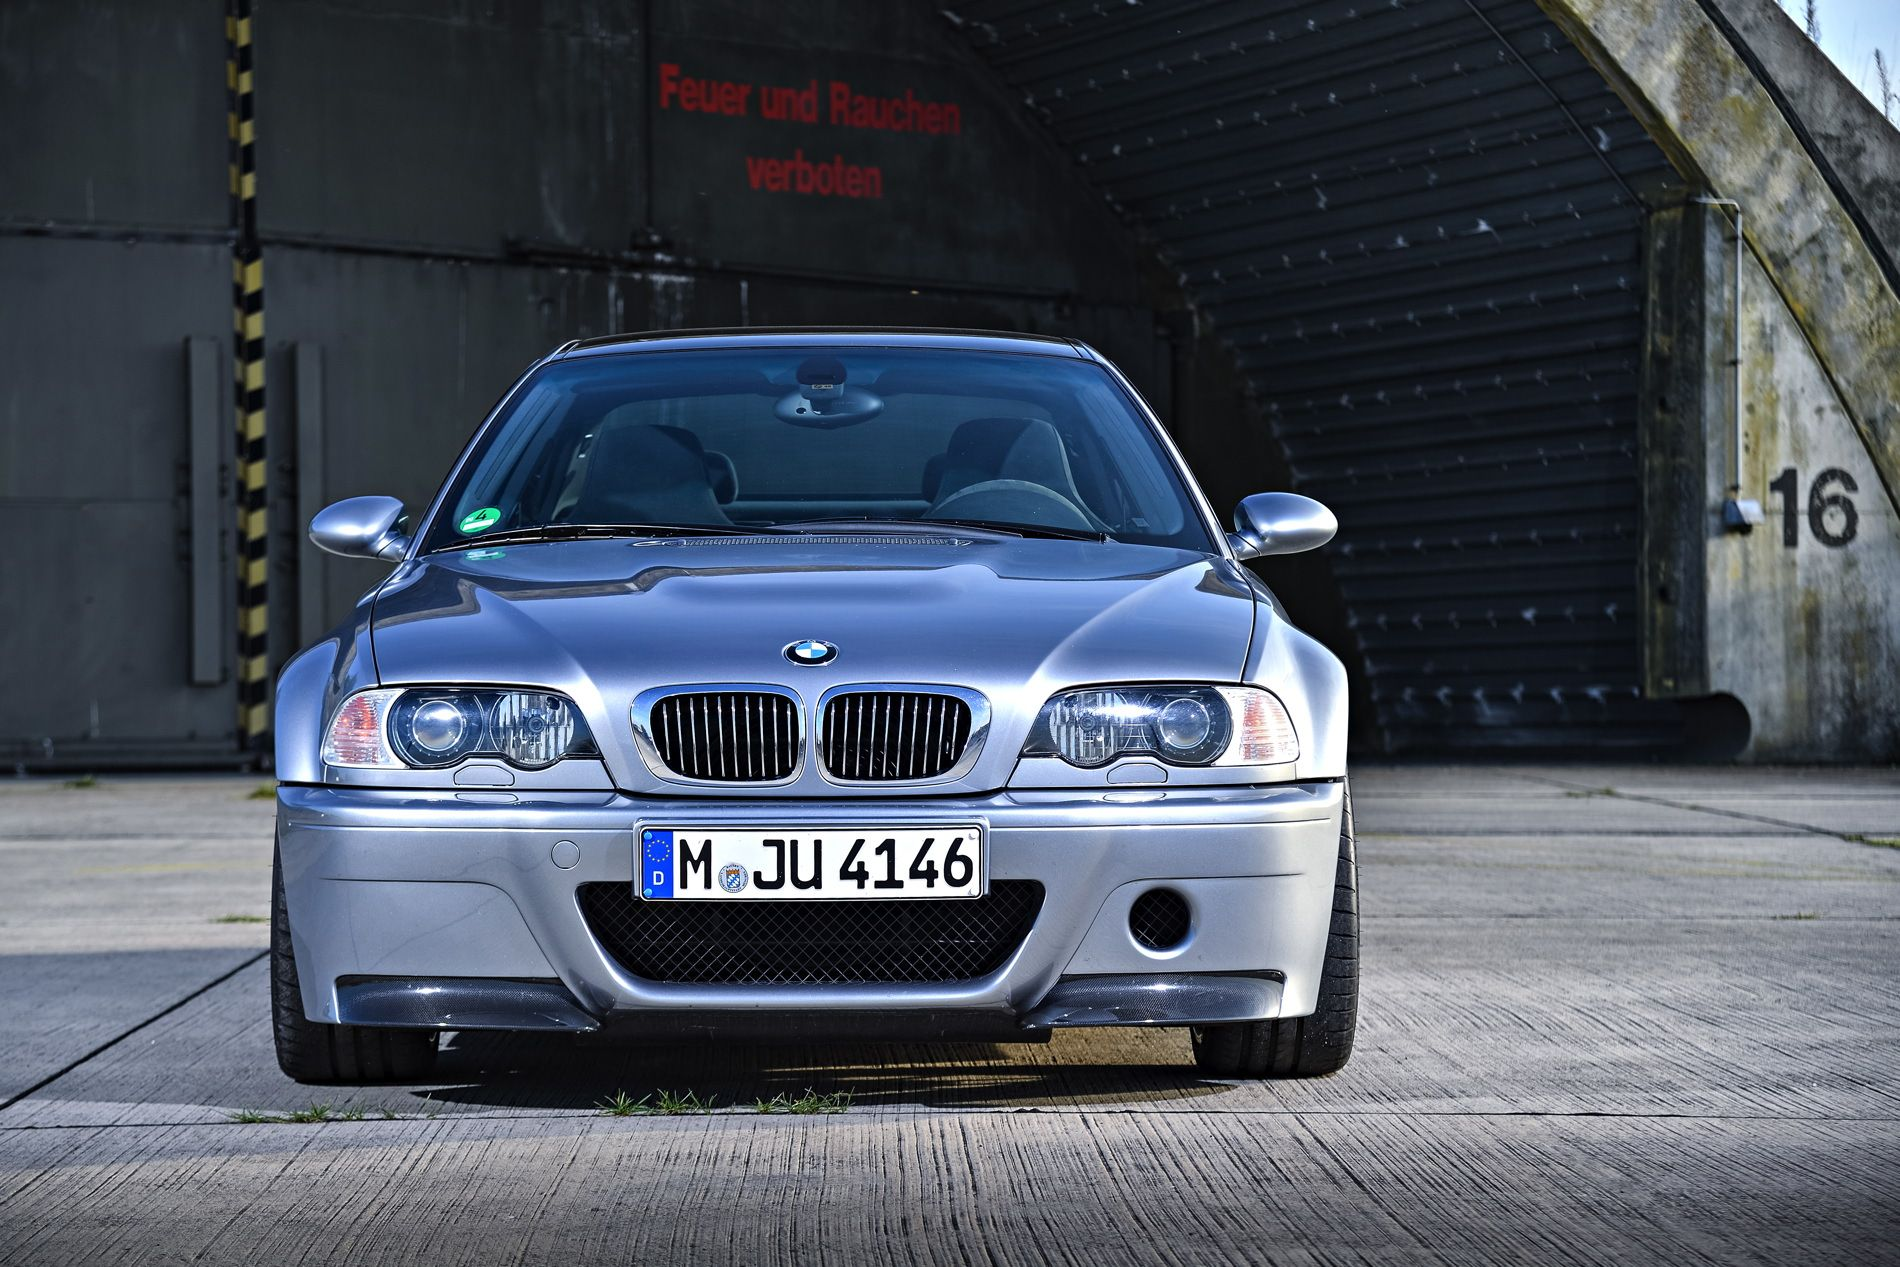 The e And ly BMW E46 M3 CSL